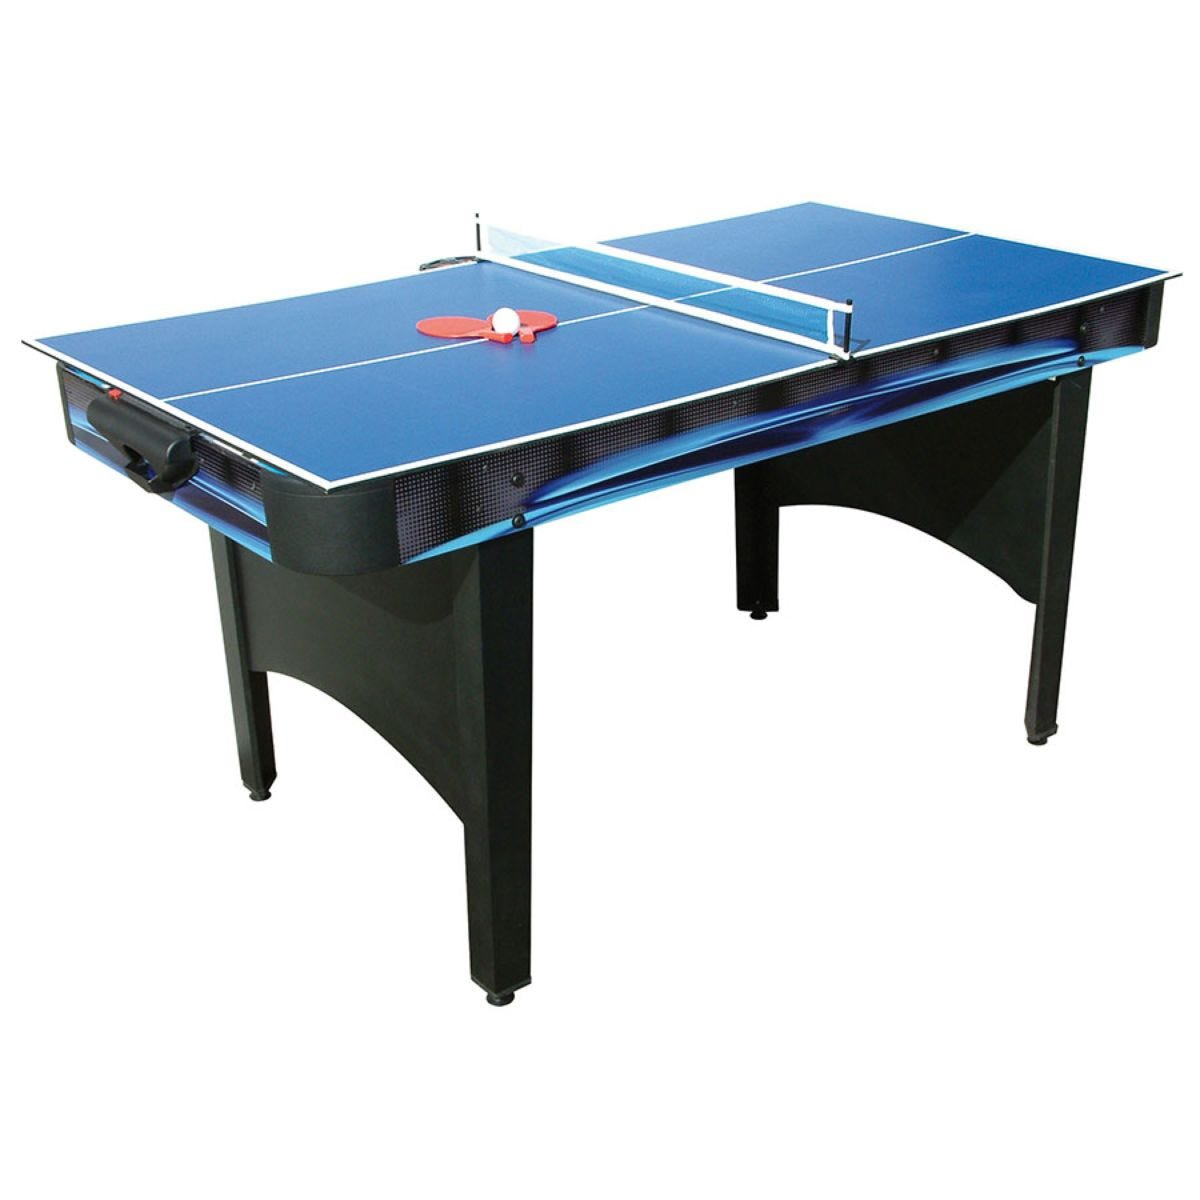 Mightymast Typhoon 6ft 2-In-1 Air Hockey and Table Tennis